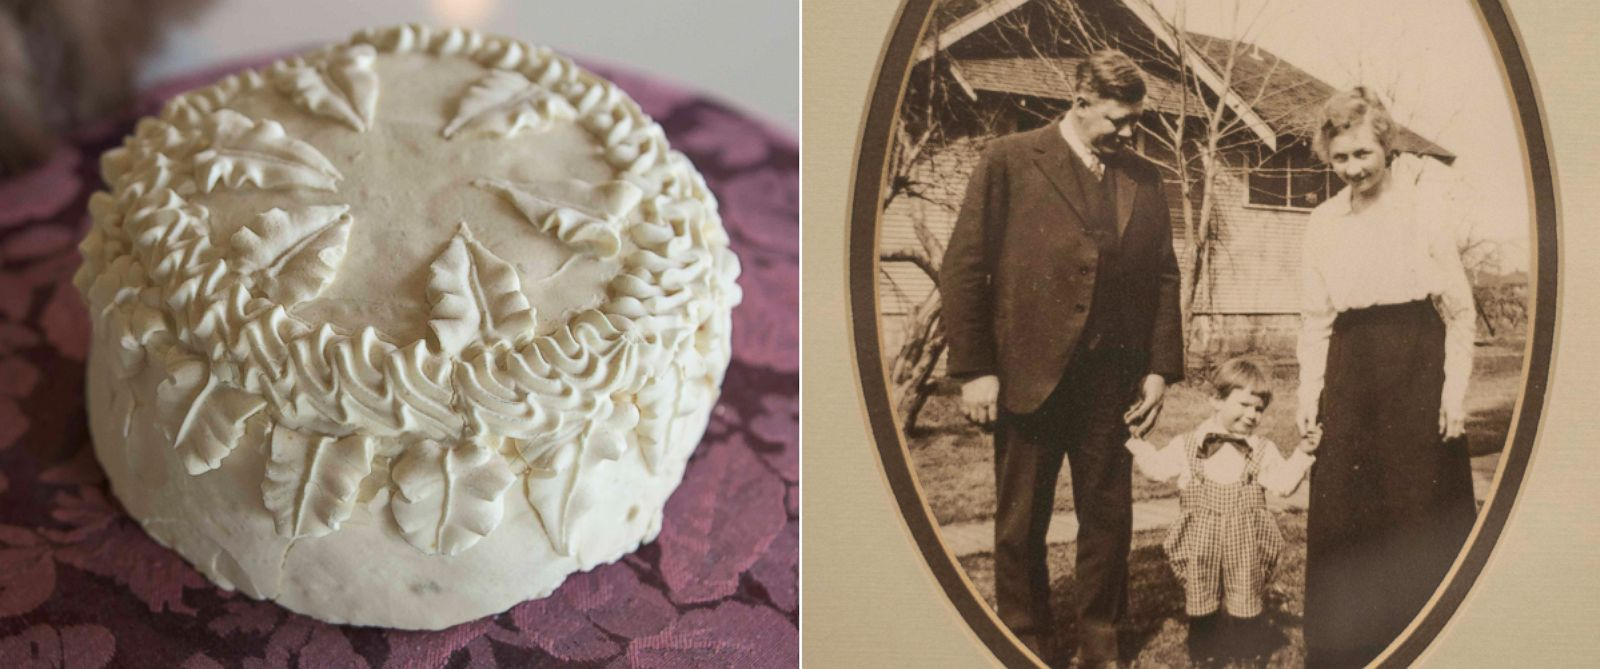 PHOTO: 100-year-old wedding cake found in grandsons garage in Yakima, Washington.